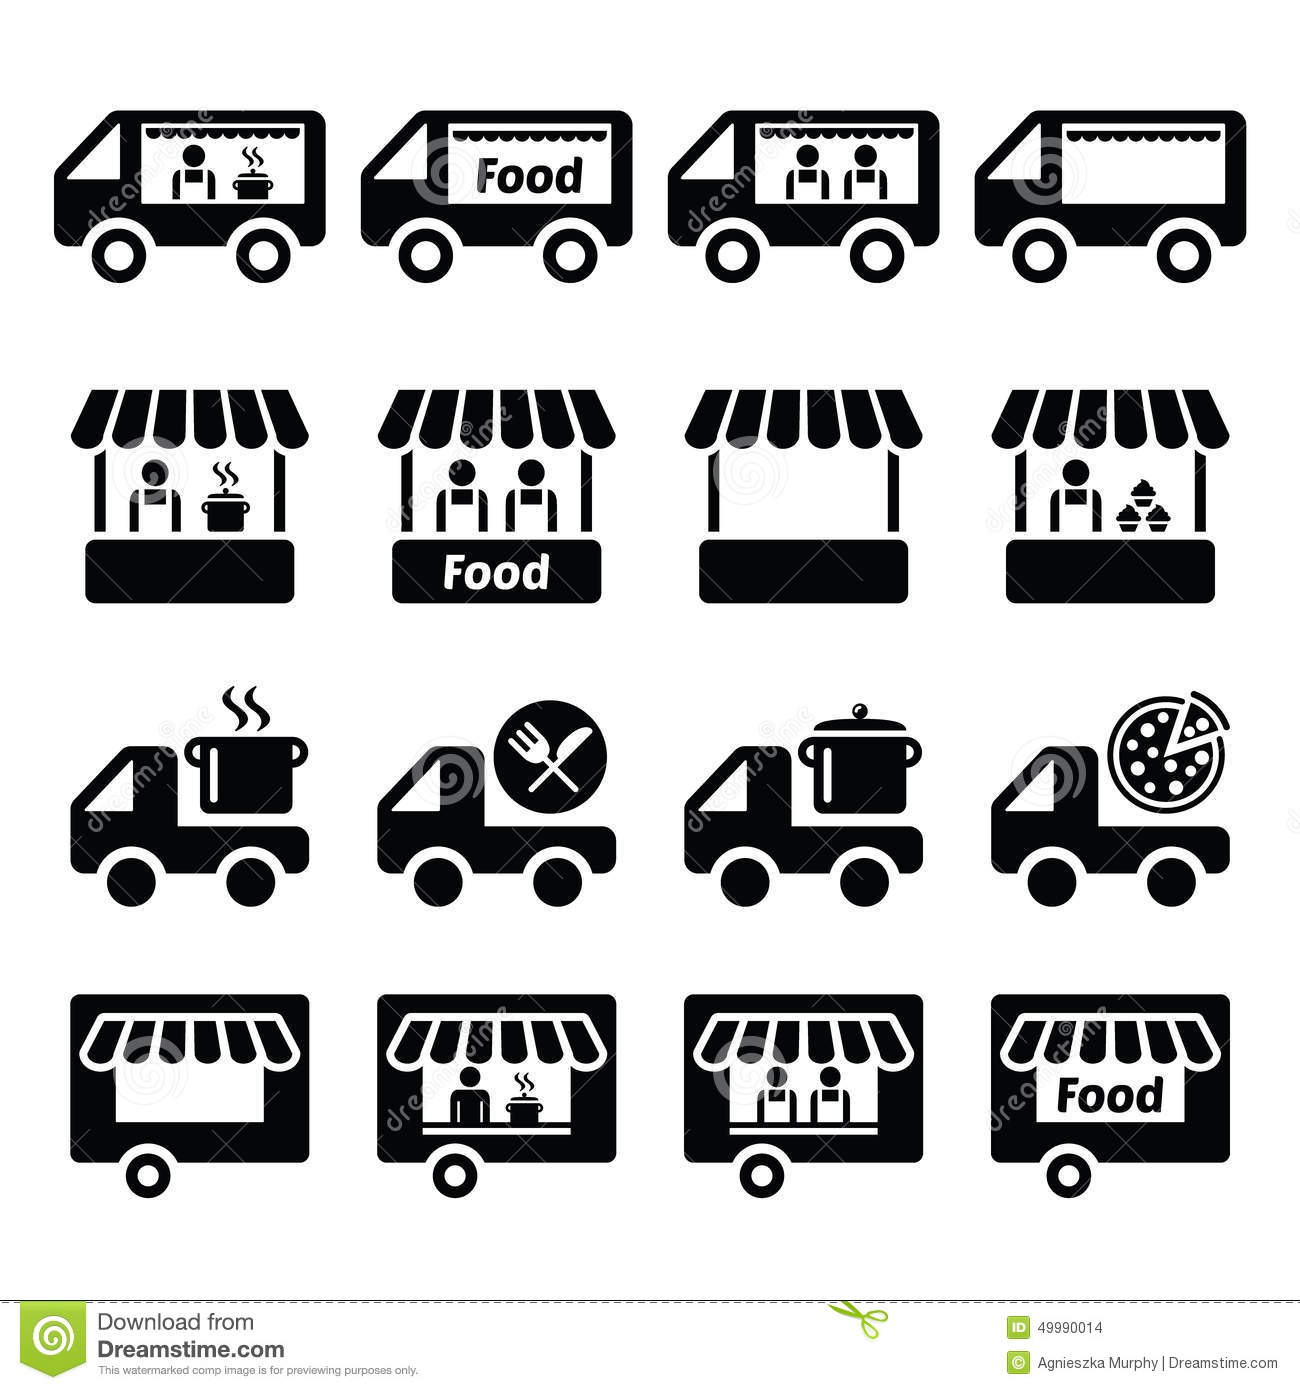 Stock Illustration C  Icon Set Web Illustration Design Vector Sign Symbol Image53095956 moreover Magney House Bingie Cross Section Drawing also Pdf Jon Boat Trailer Parts Randkey likewise Trailer Truck Drawing further Stock Illustration Food Truck Food Stand Food Trailer Icons Set Vector Market Festival Isolated White Image49990014. on trailer plans